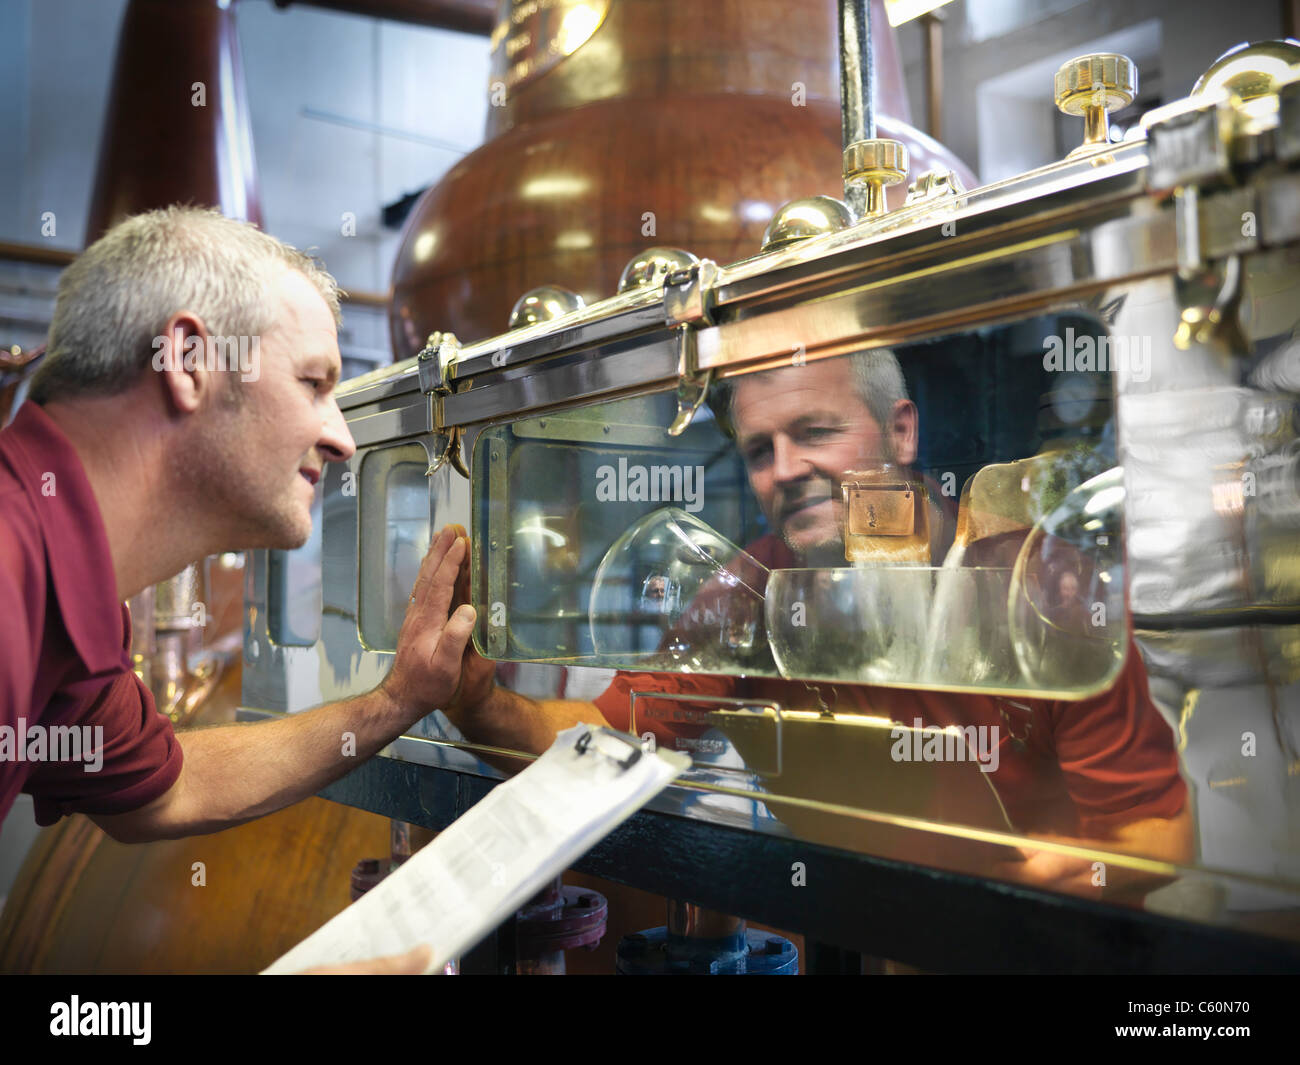 Worker checking whisky in distillery - Stock Image